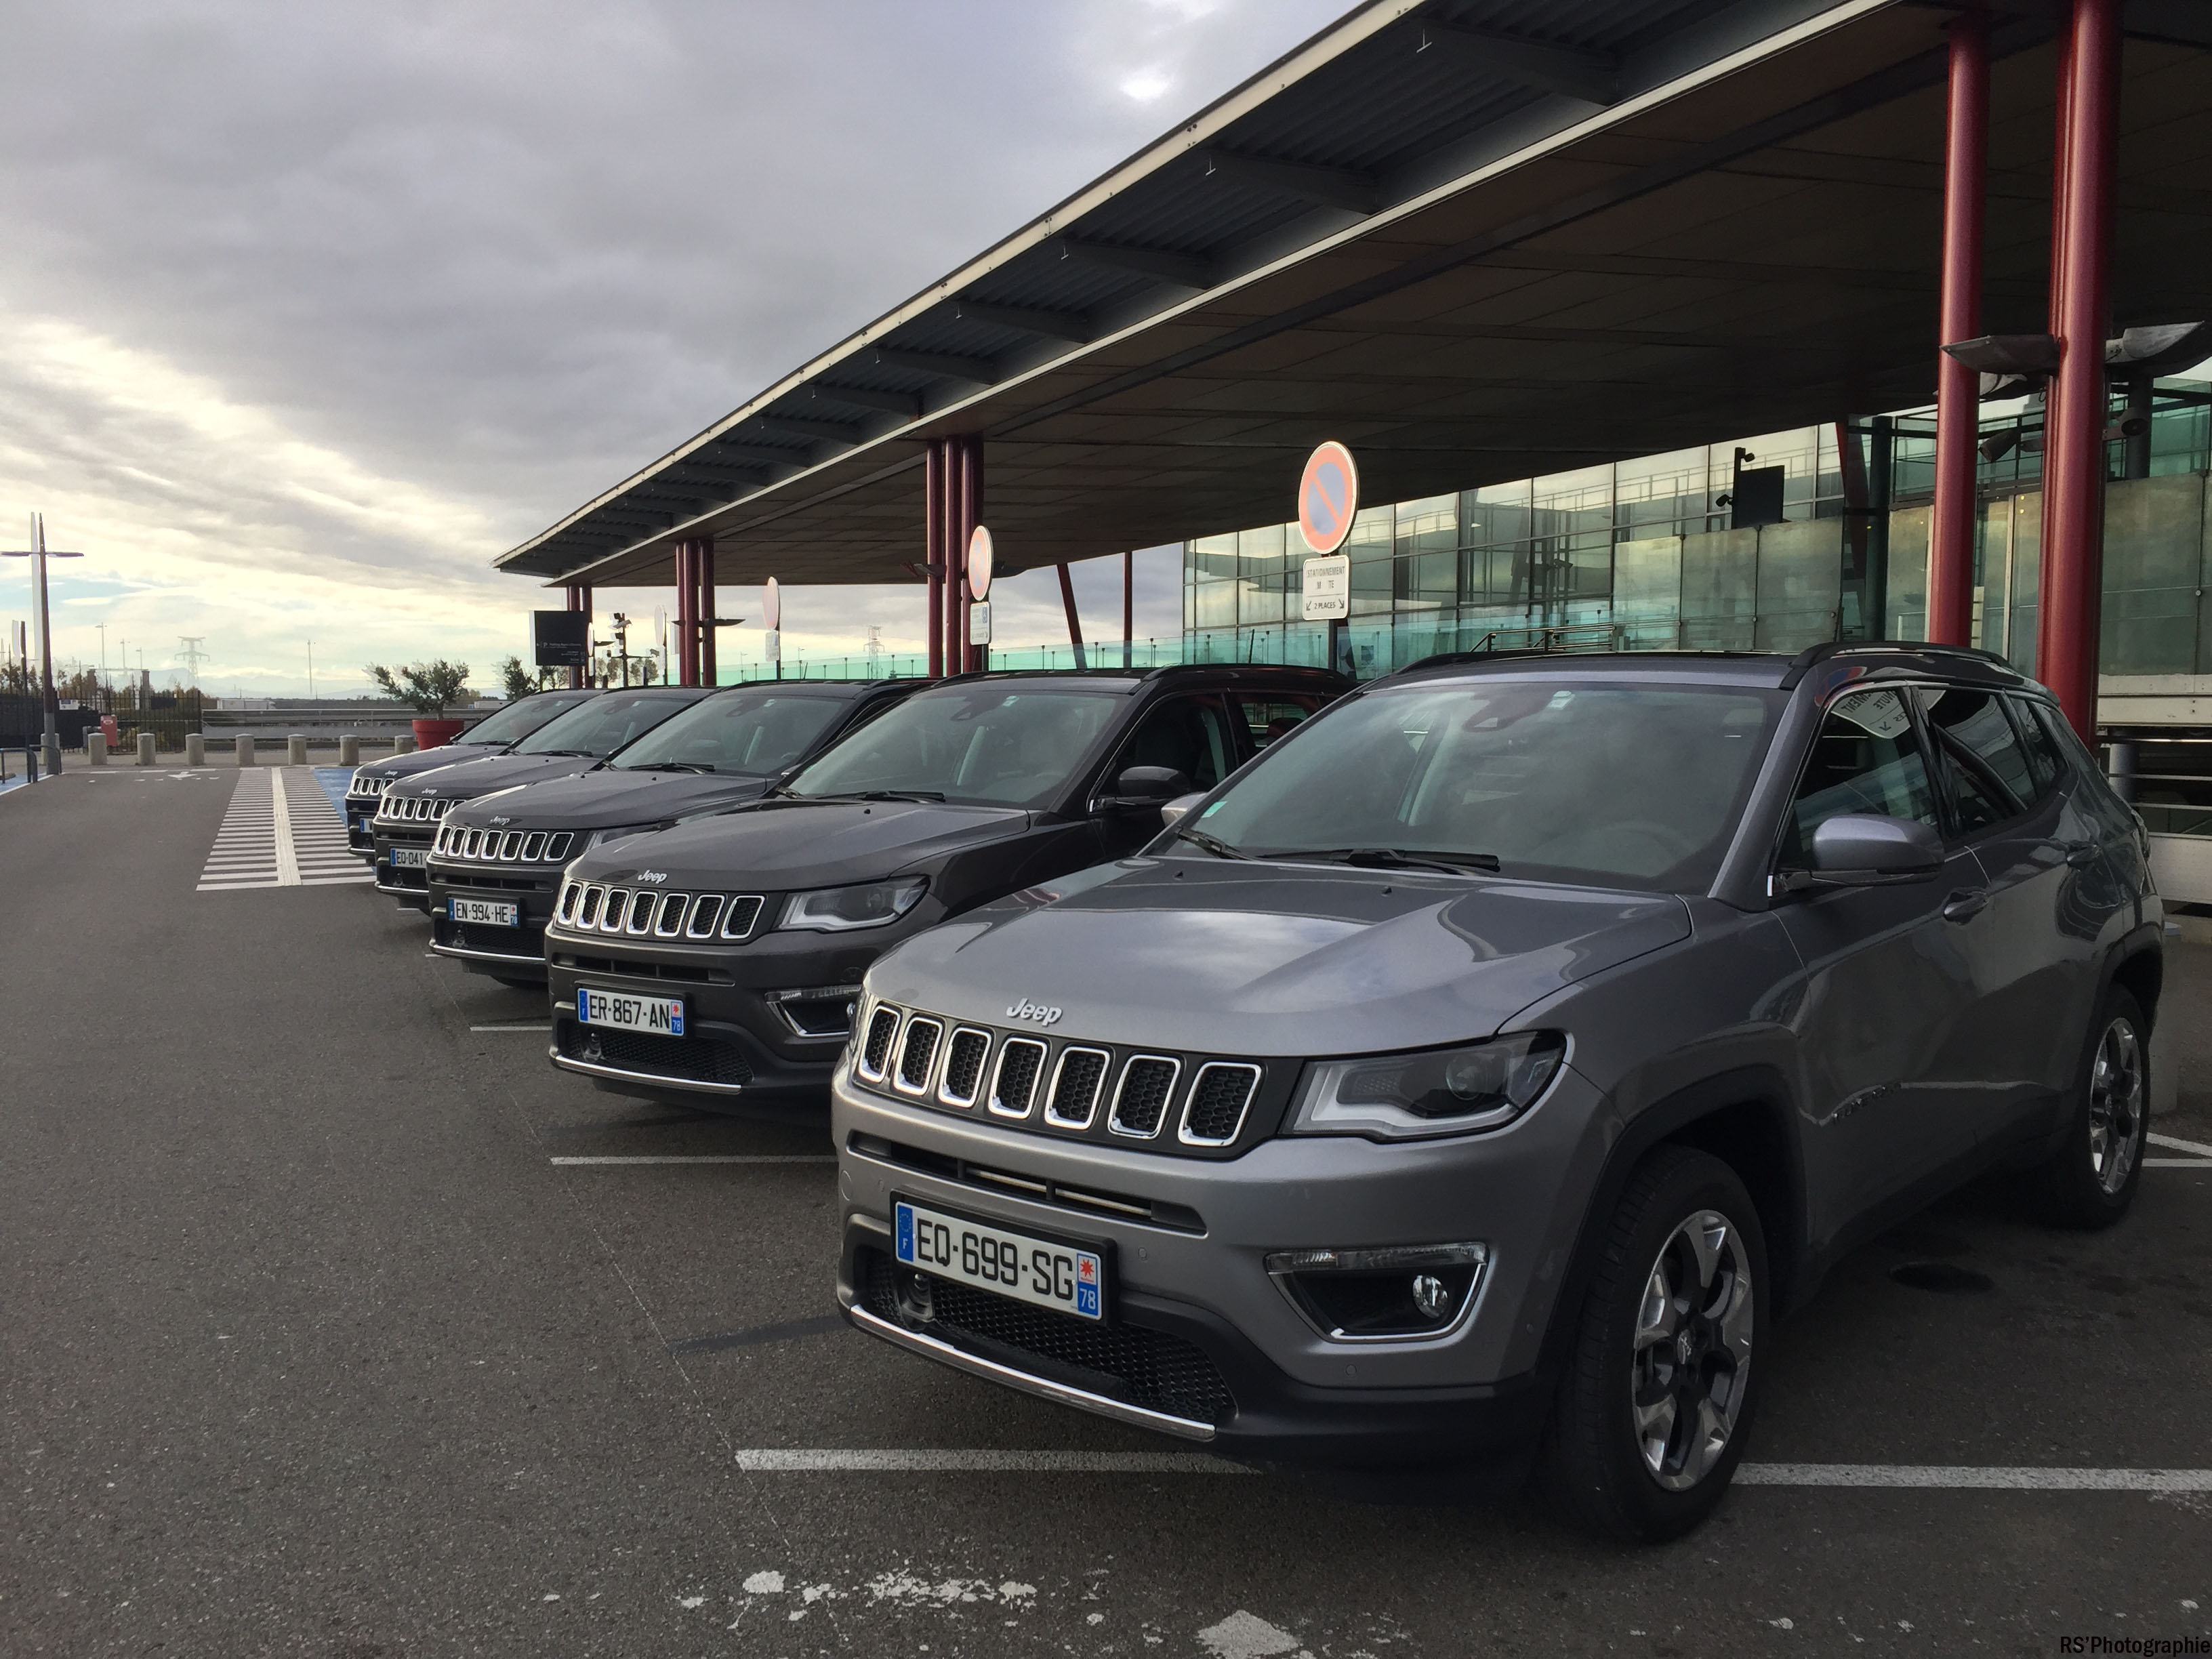 jeepcompass1-jeep-compass-avant-front-Arnaud Demasier-RSPhotographie